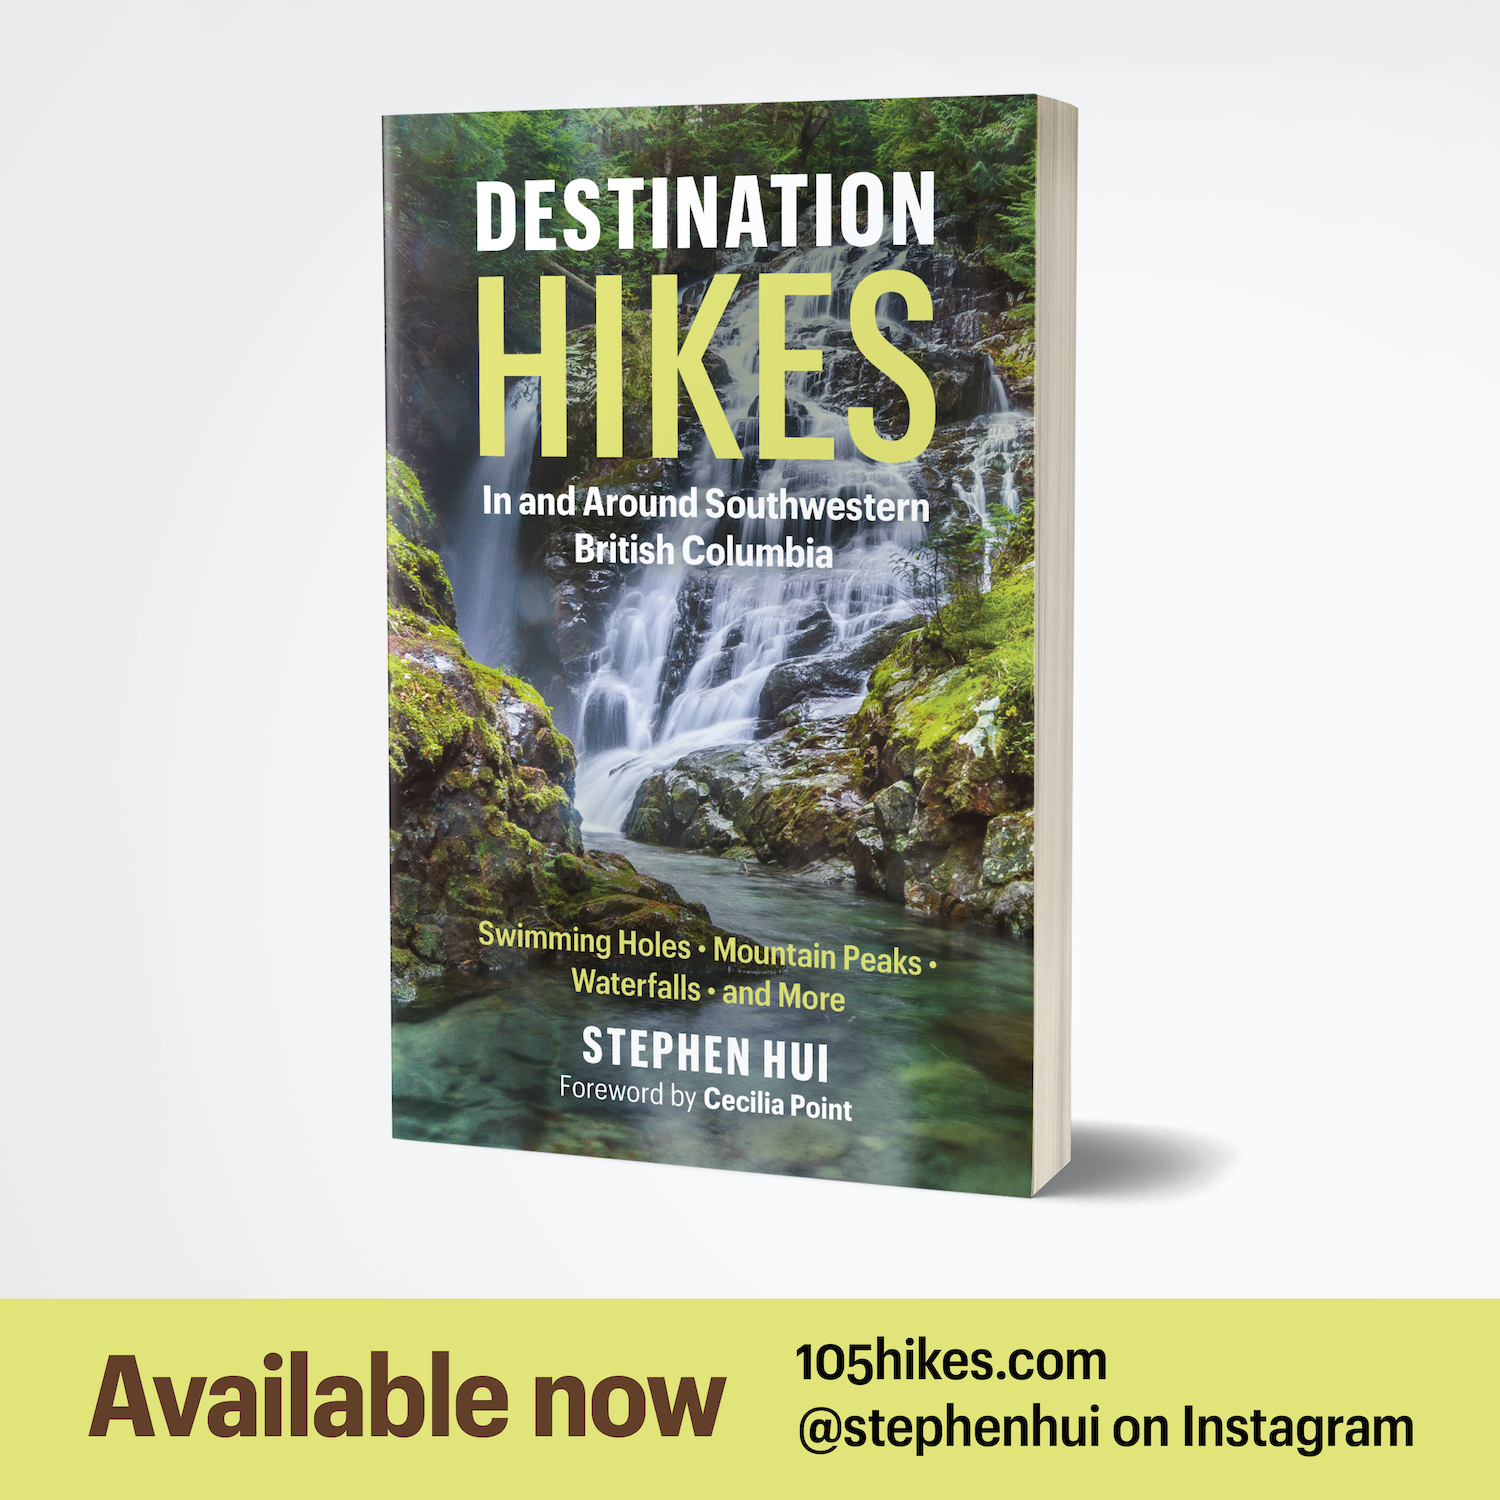 Destination Hikes is available now